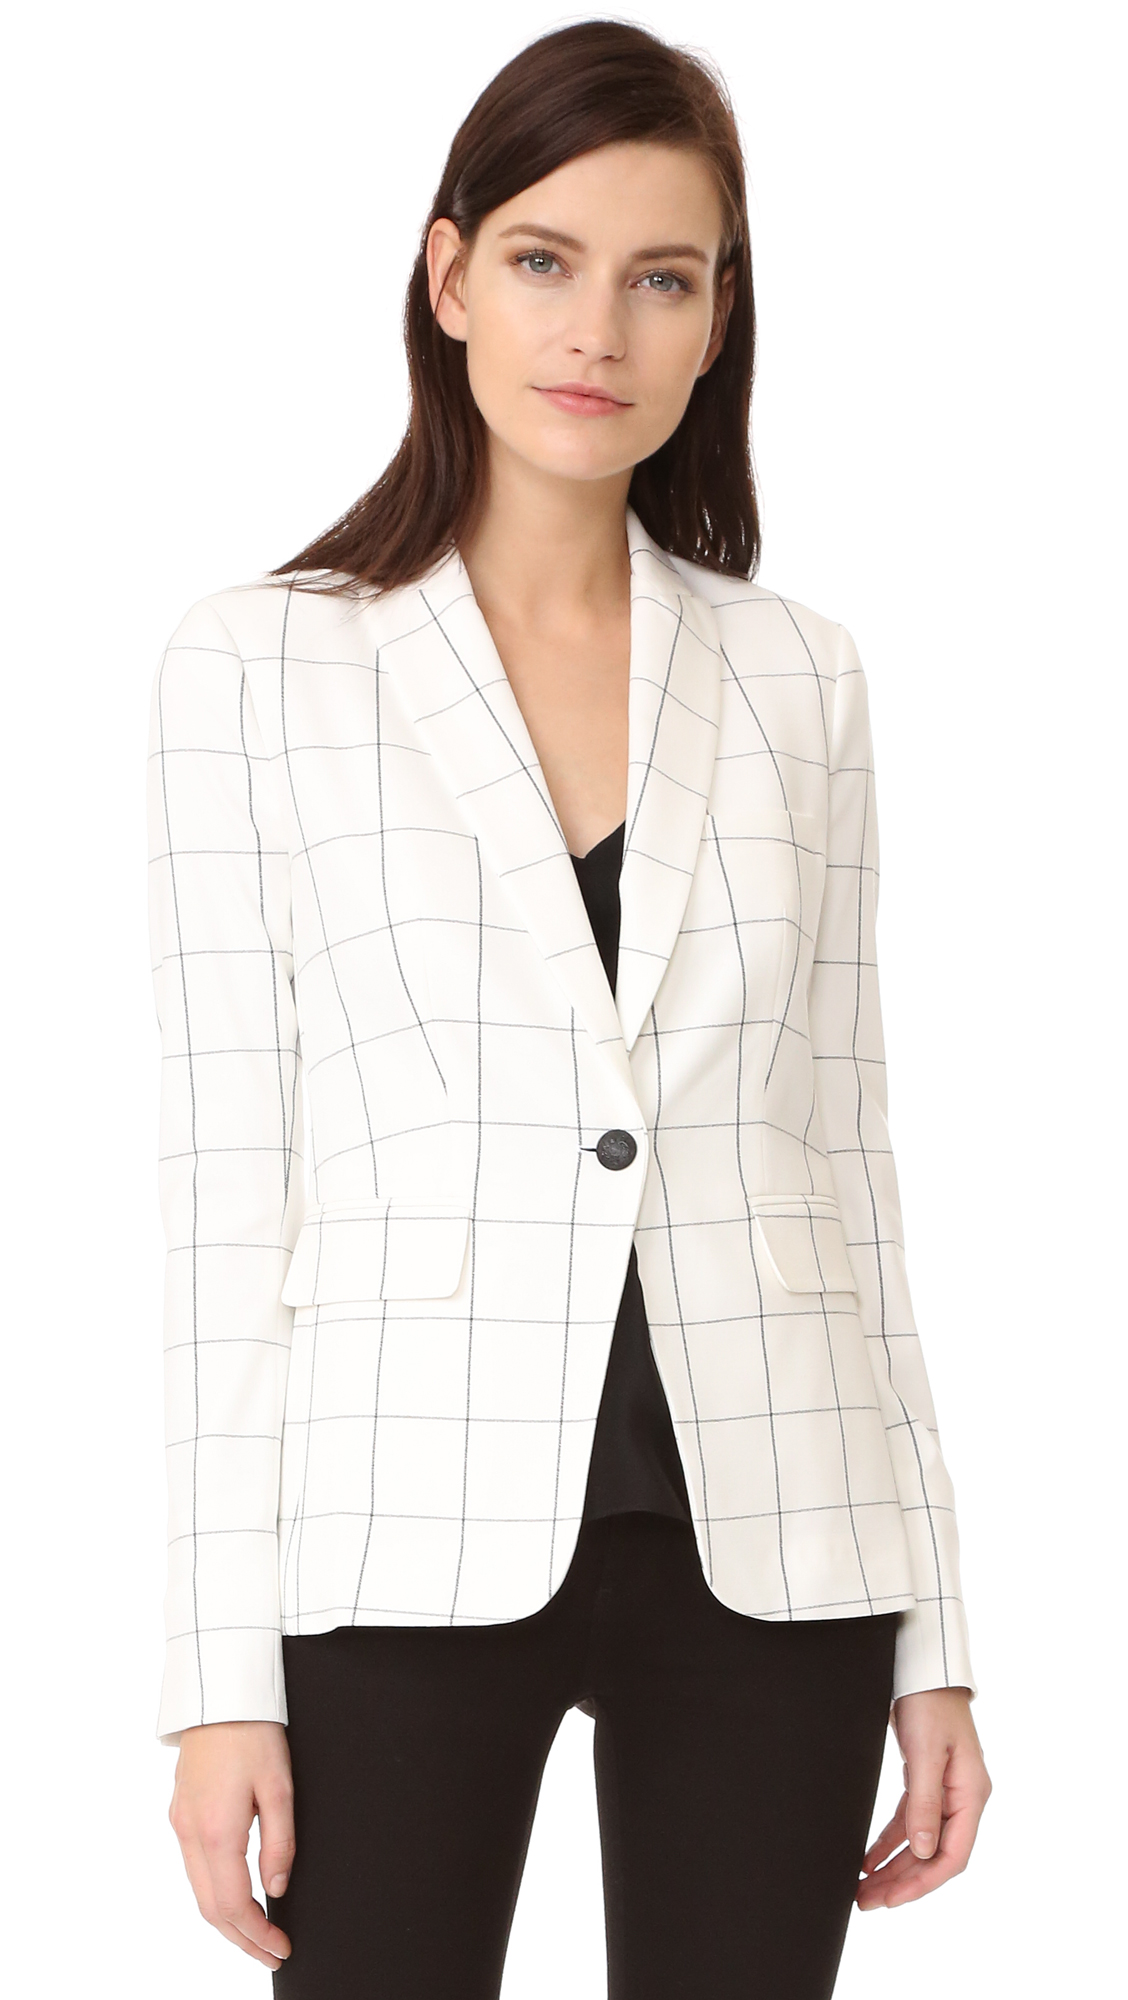 Windowpane checks bring sophisticated style to this tailored Veronica Beard blazer. Padding structures the shoulders, and a vent opens the back. Notched lapels and single button placket. 3 pockets. Long sleeves. Lined. Fabric: Crepe suiting. 68% polyester/28% viscose/3%